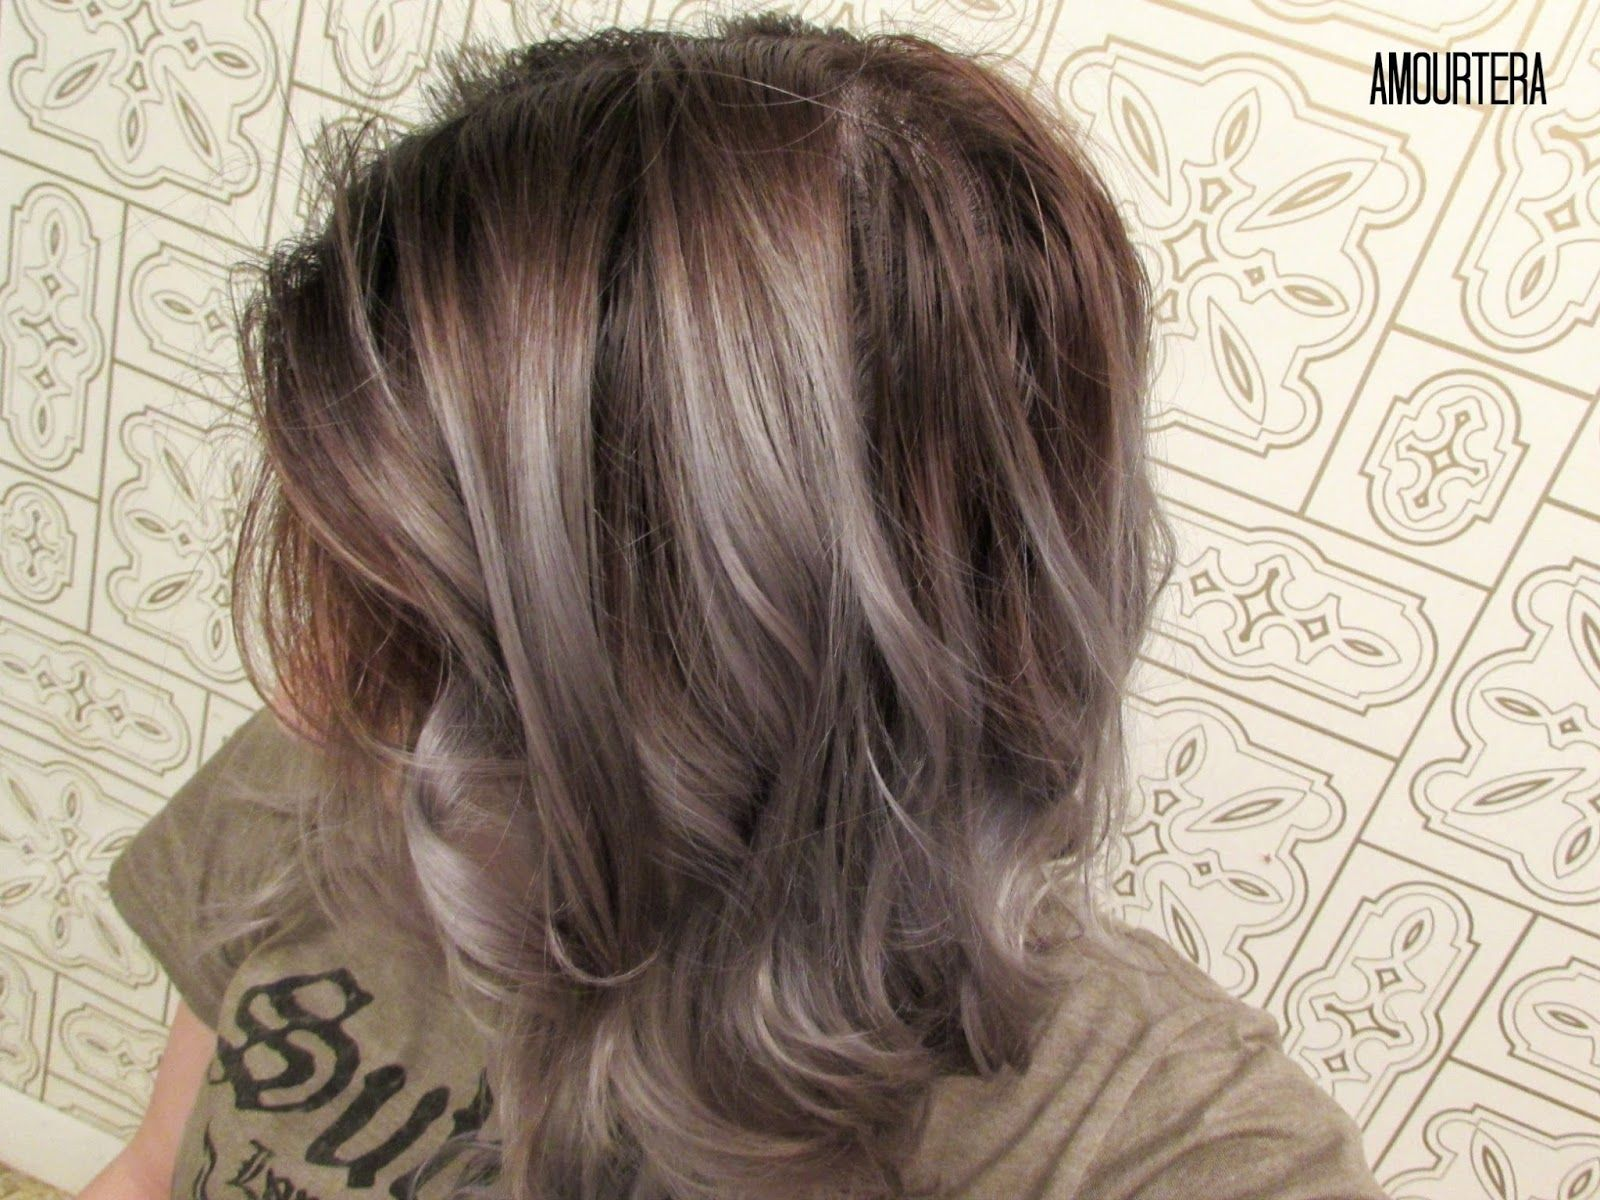 Amourtera > How to Get Silver/Gray Hair at Home | Beauty ...